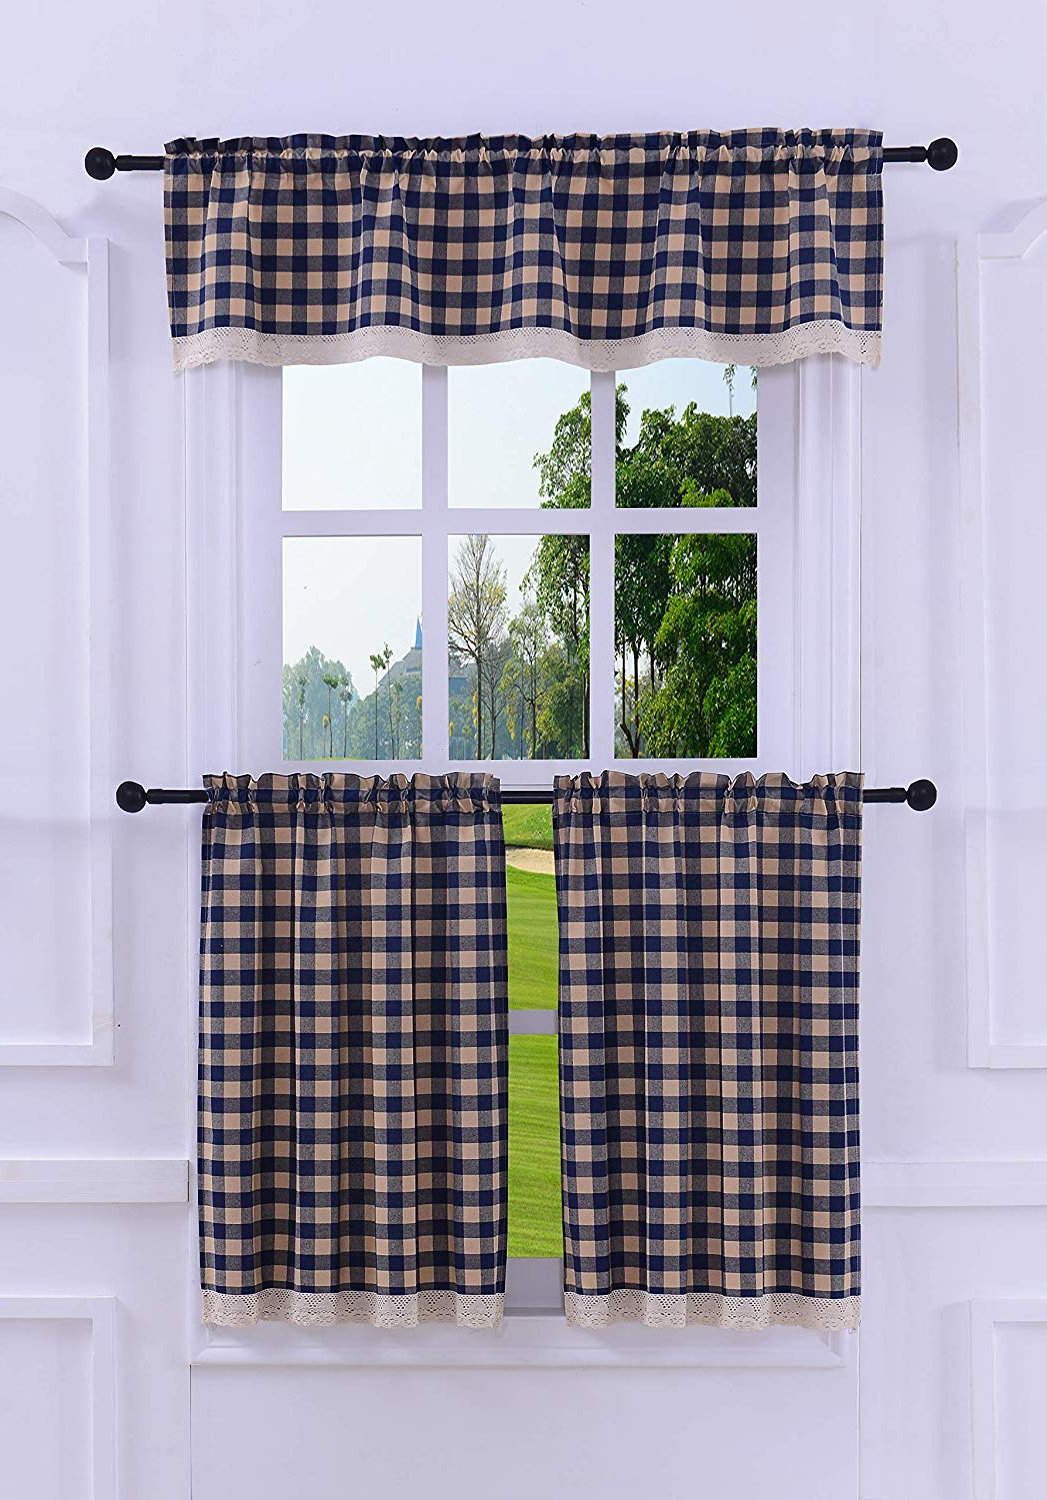 Most Popular 3 Pieces Kitchen Curtain Tier And Valance Set Checkered Cotton Blend Navy Blue Pertaining To Classic Navy Cotton Blend Buffalo Check Kitchen Curtain Sets (Gallery 5 of 20)